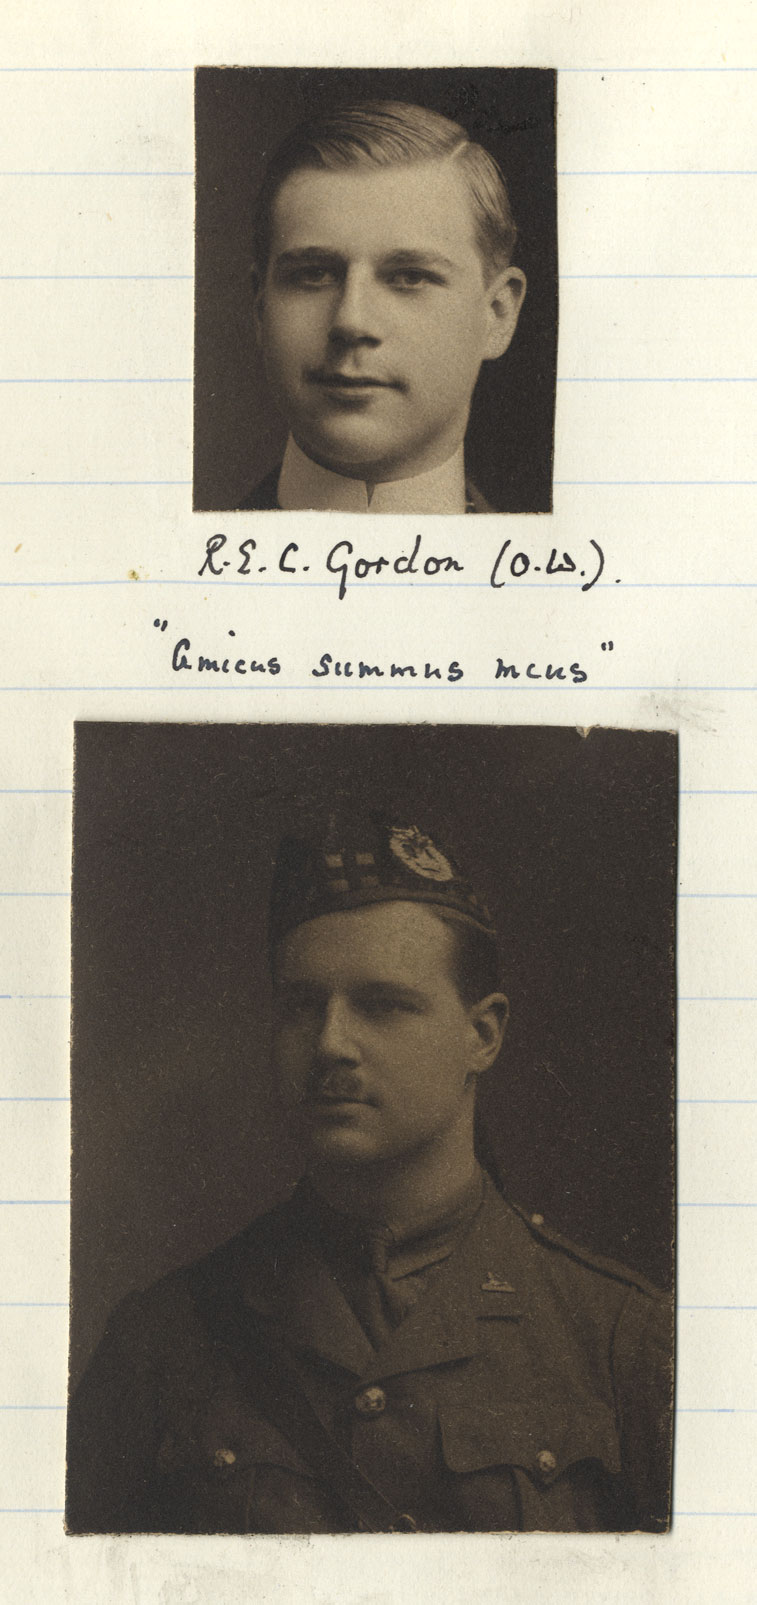 Two photographs of Gordon